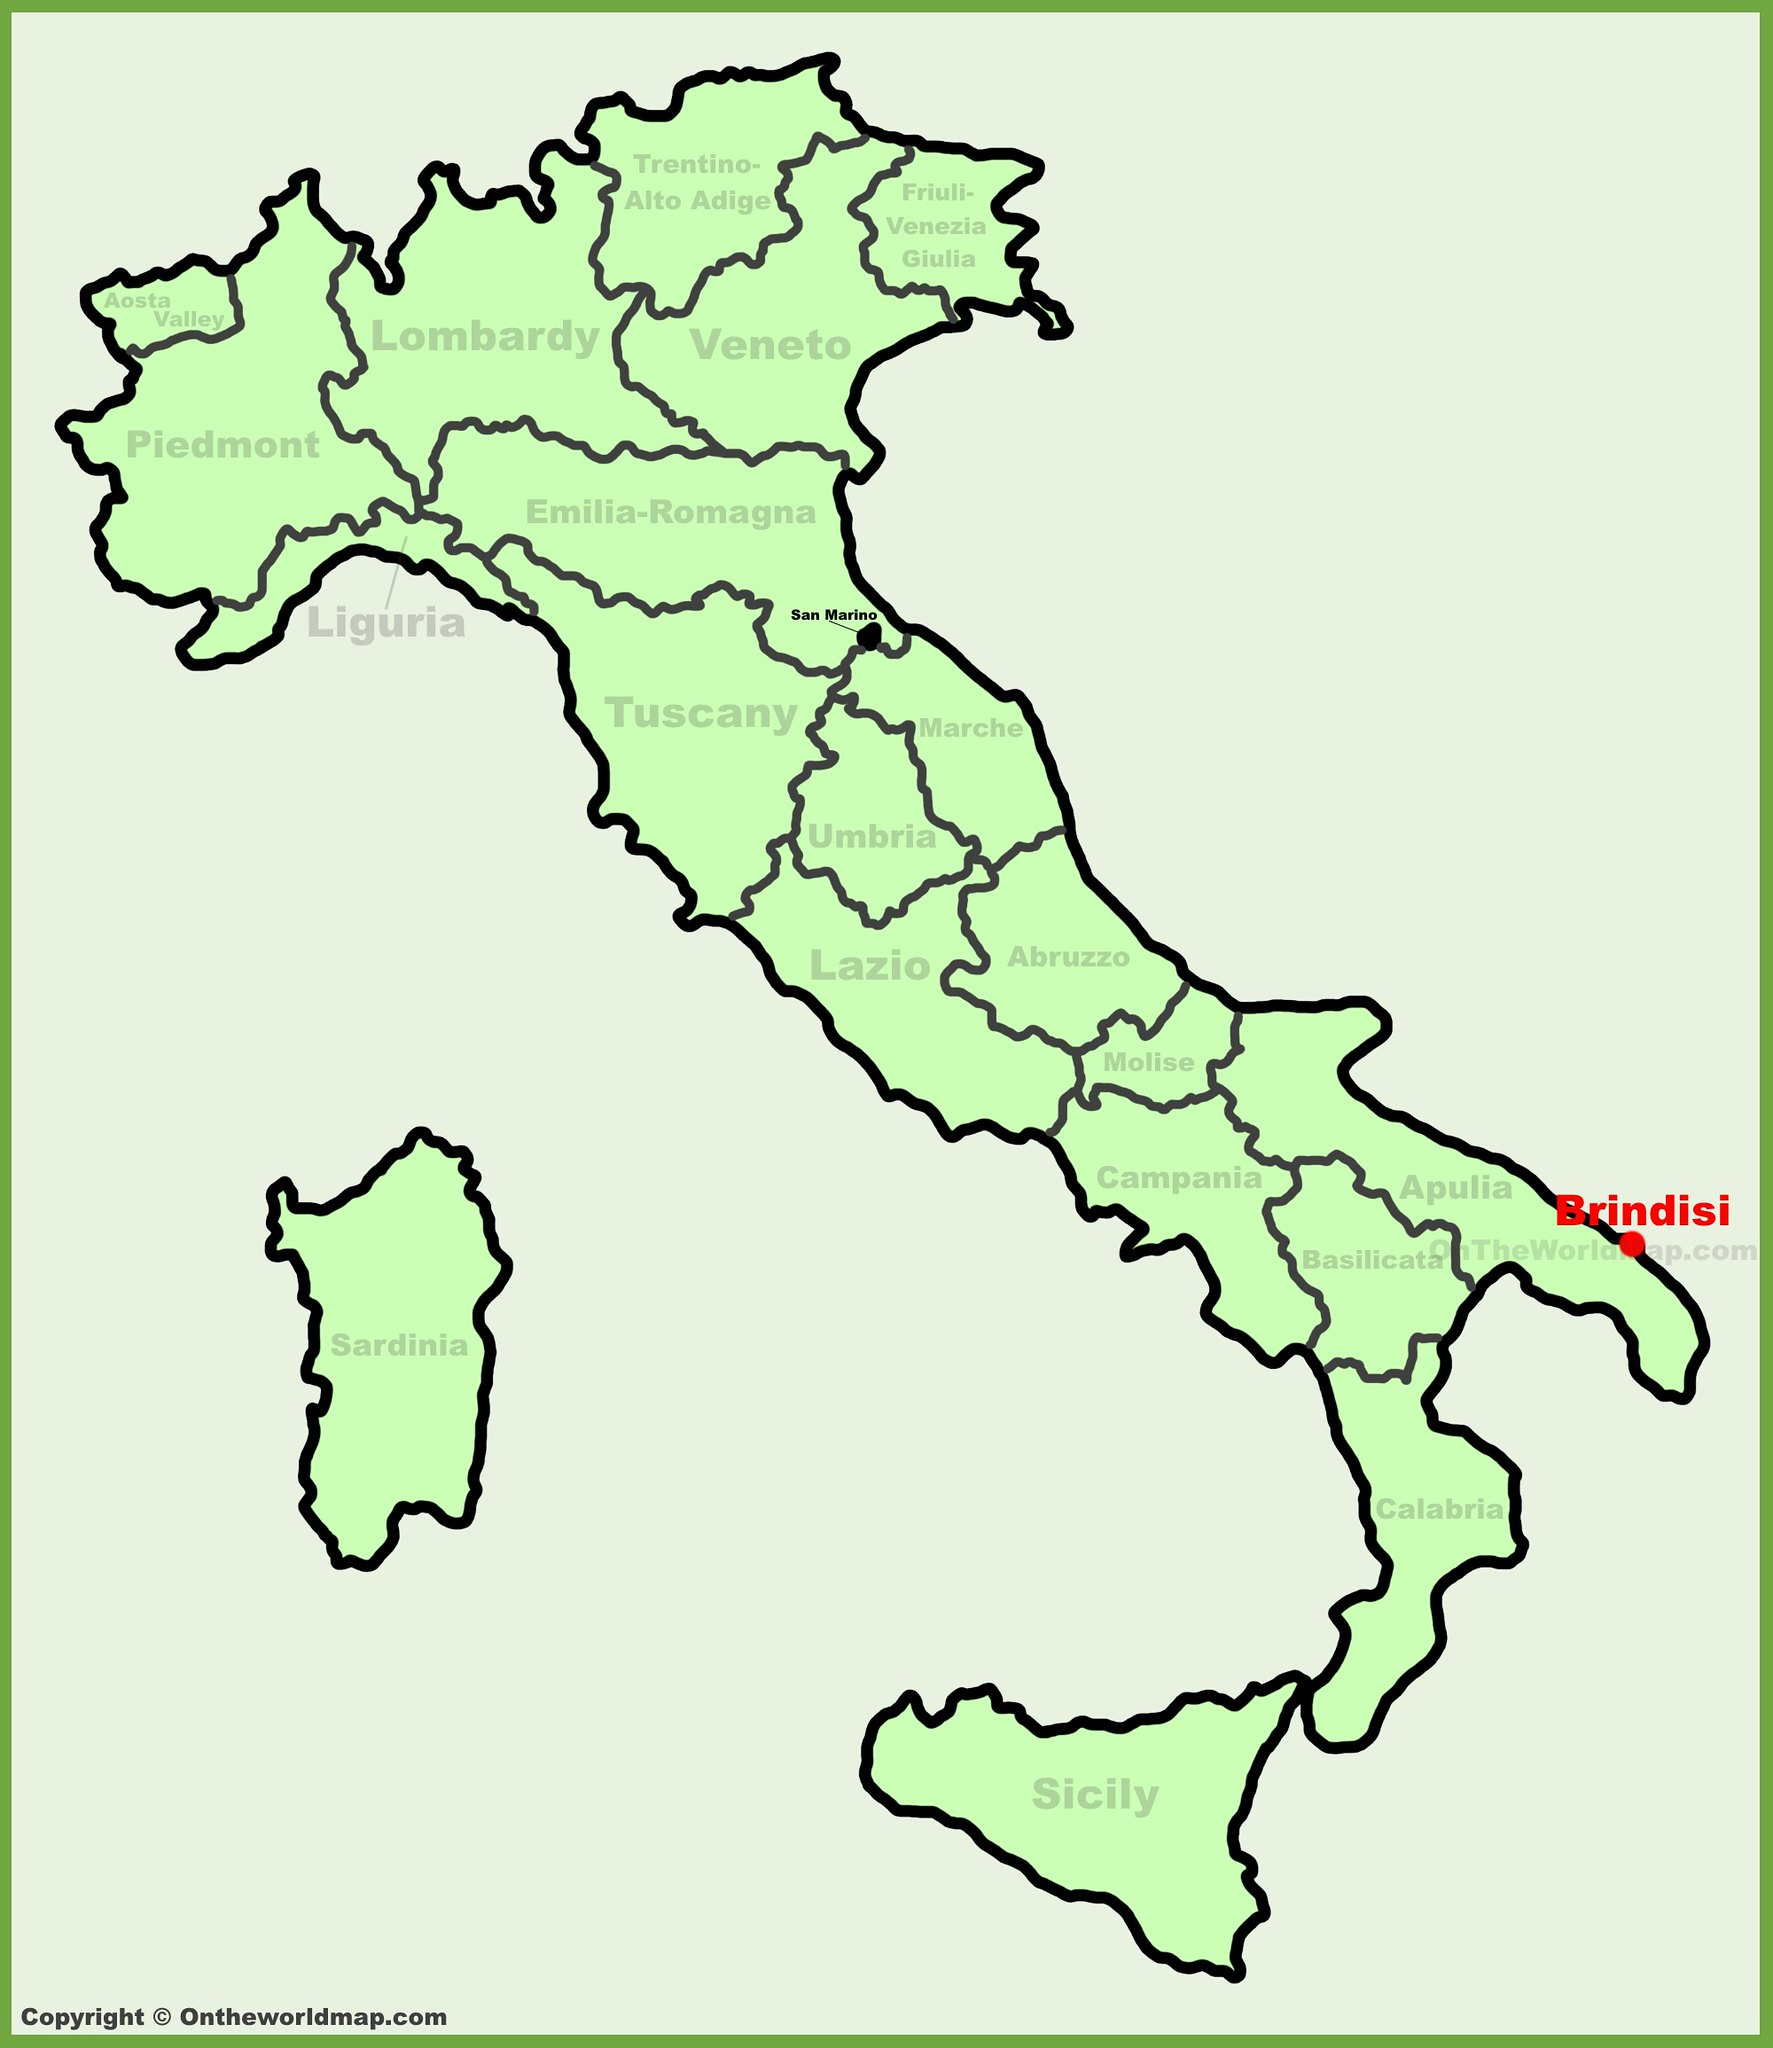 A map of Italy with Brindisi's location on the southern tip indicated with a red dot